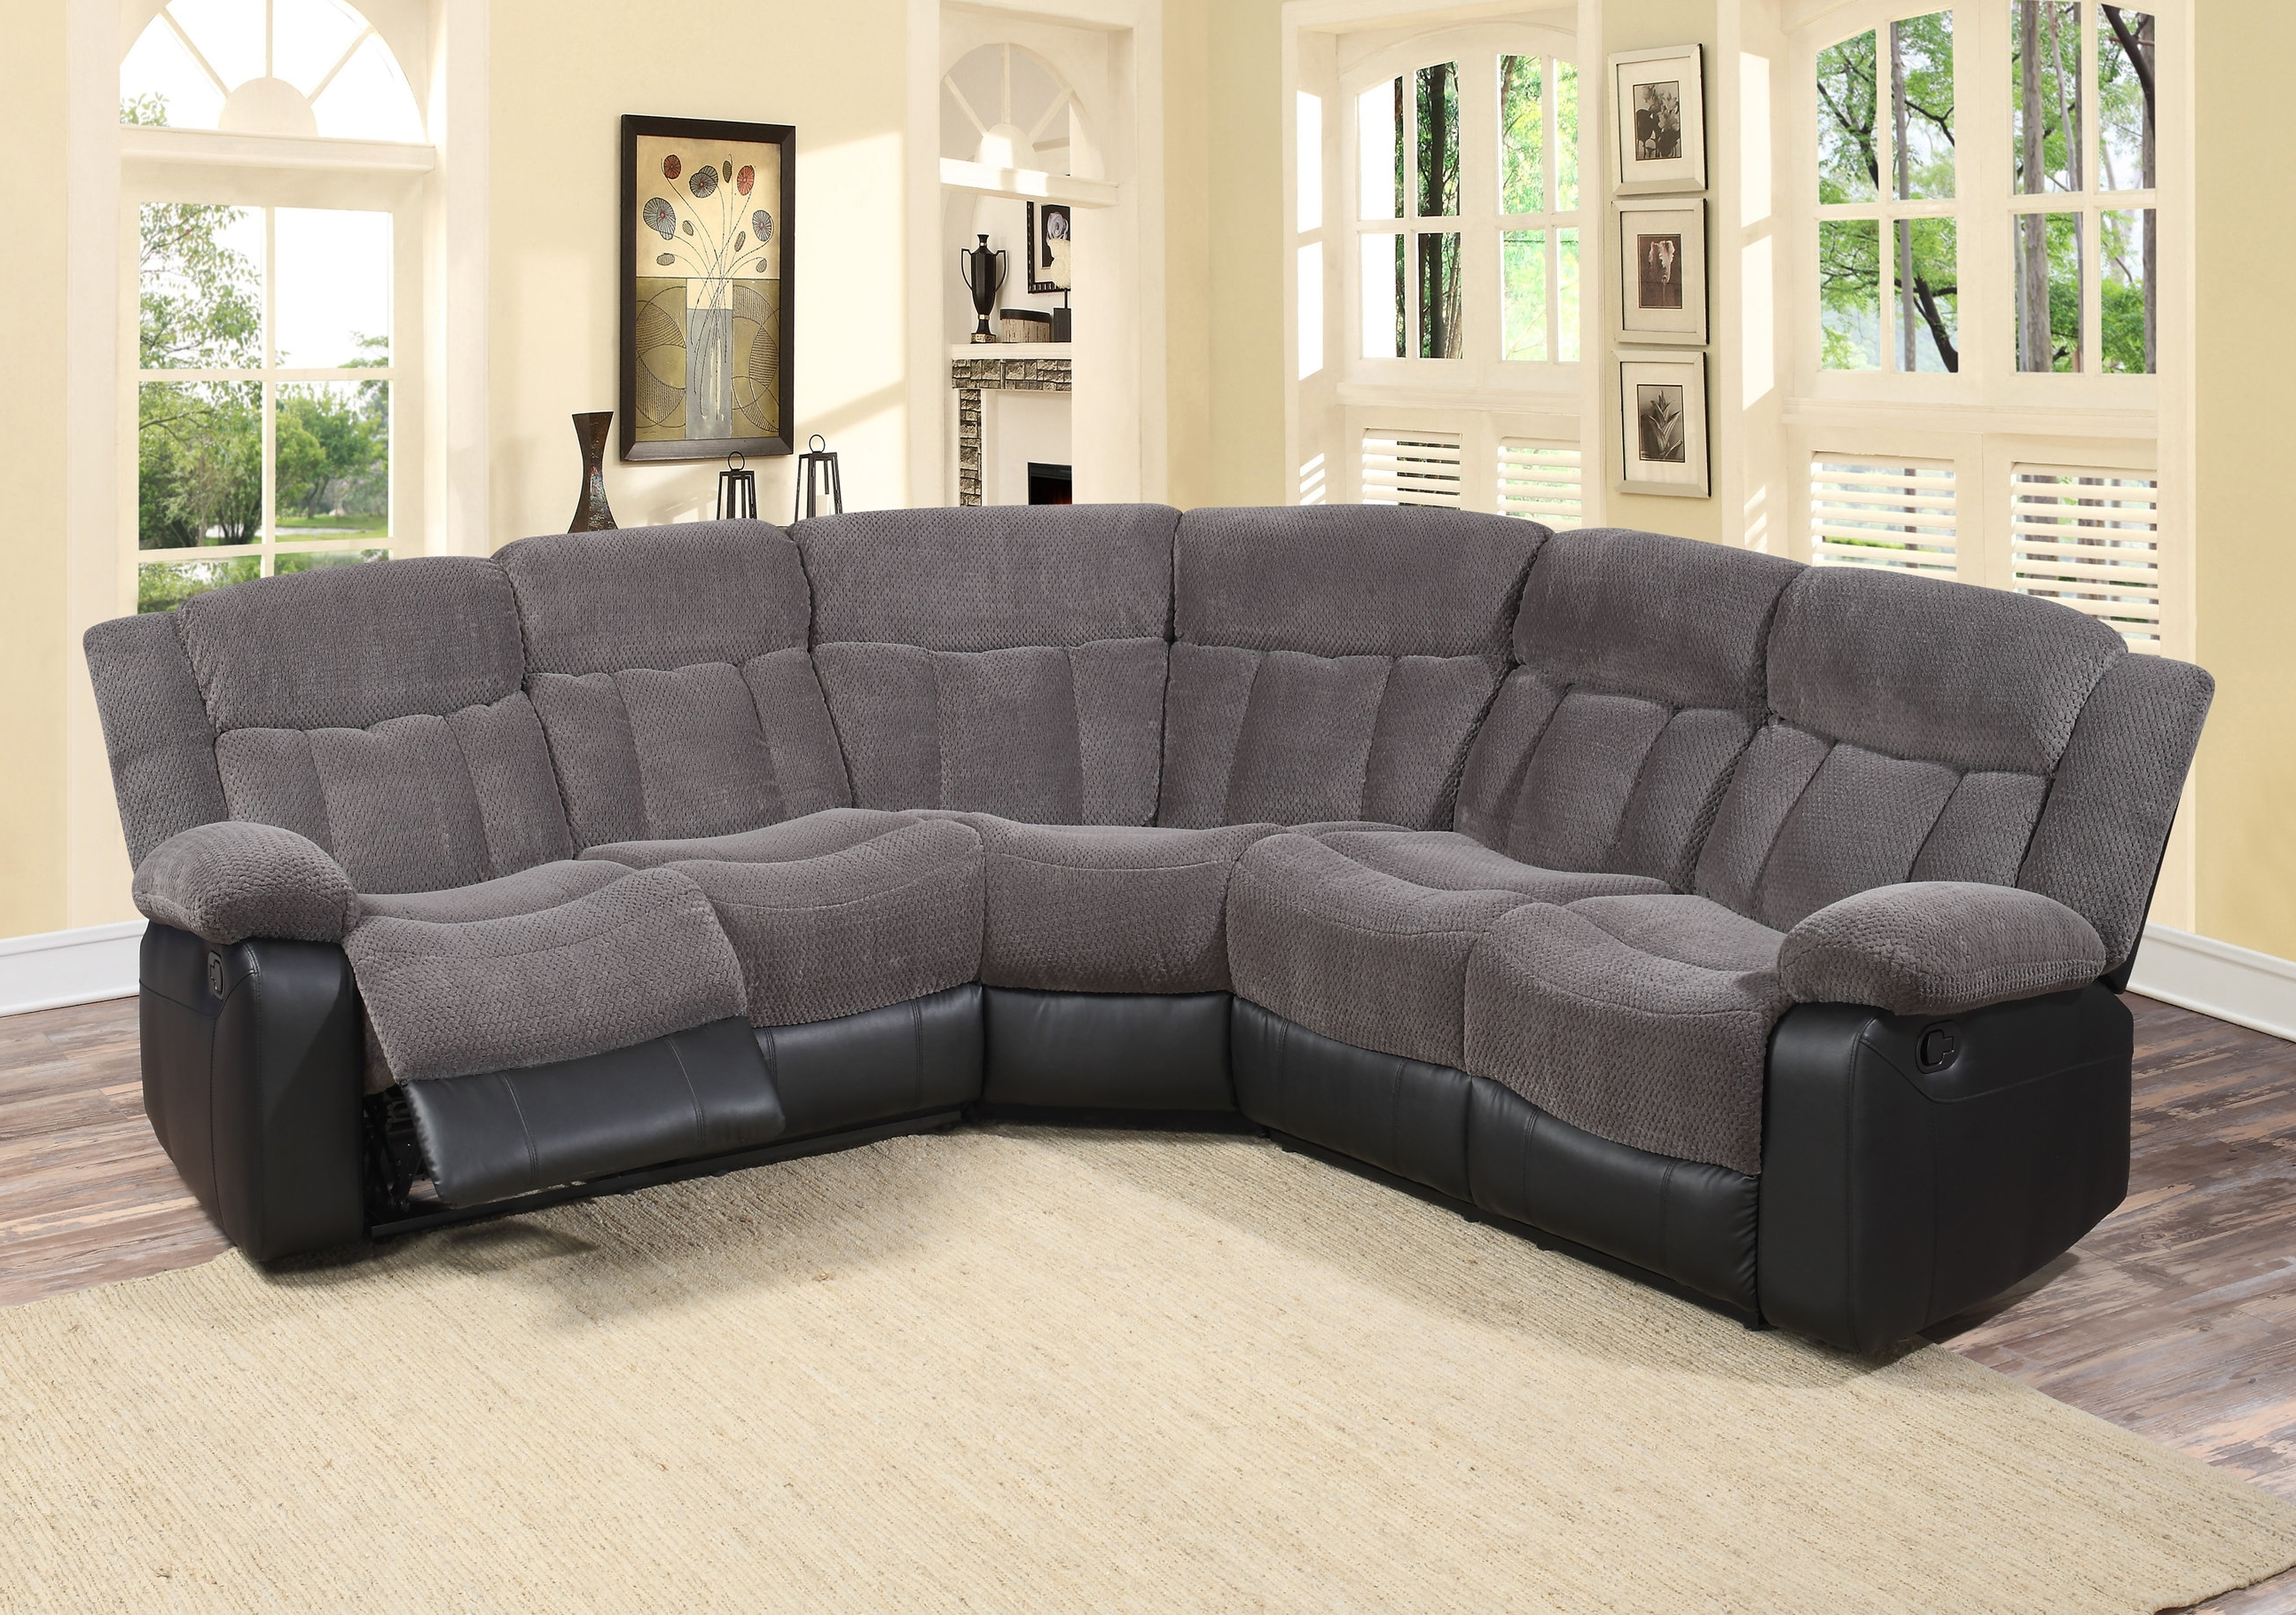 Most Popular Reclining Sectionals You'll Love (Gallery 10 of 15)